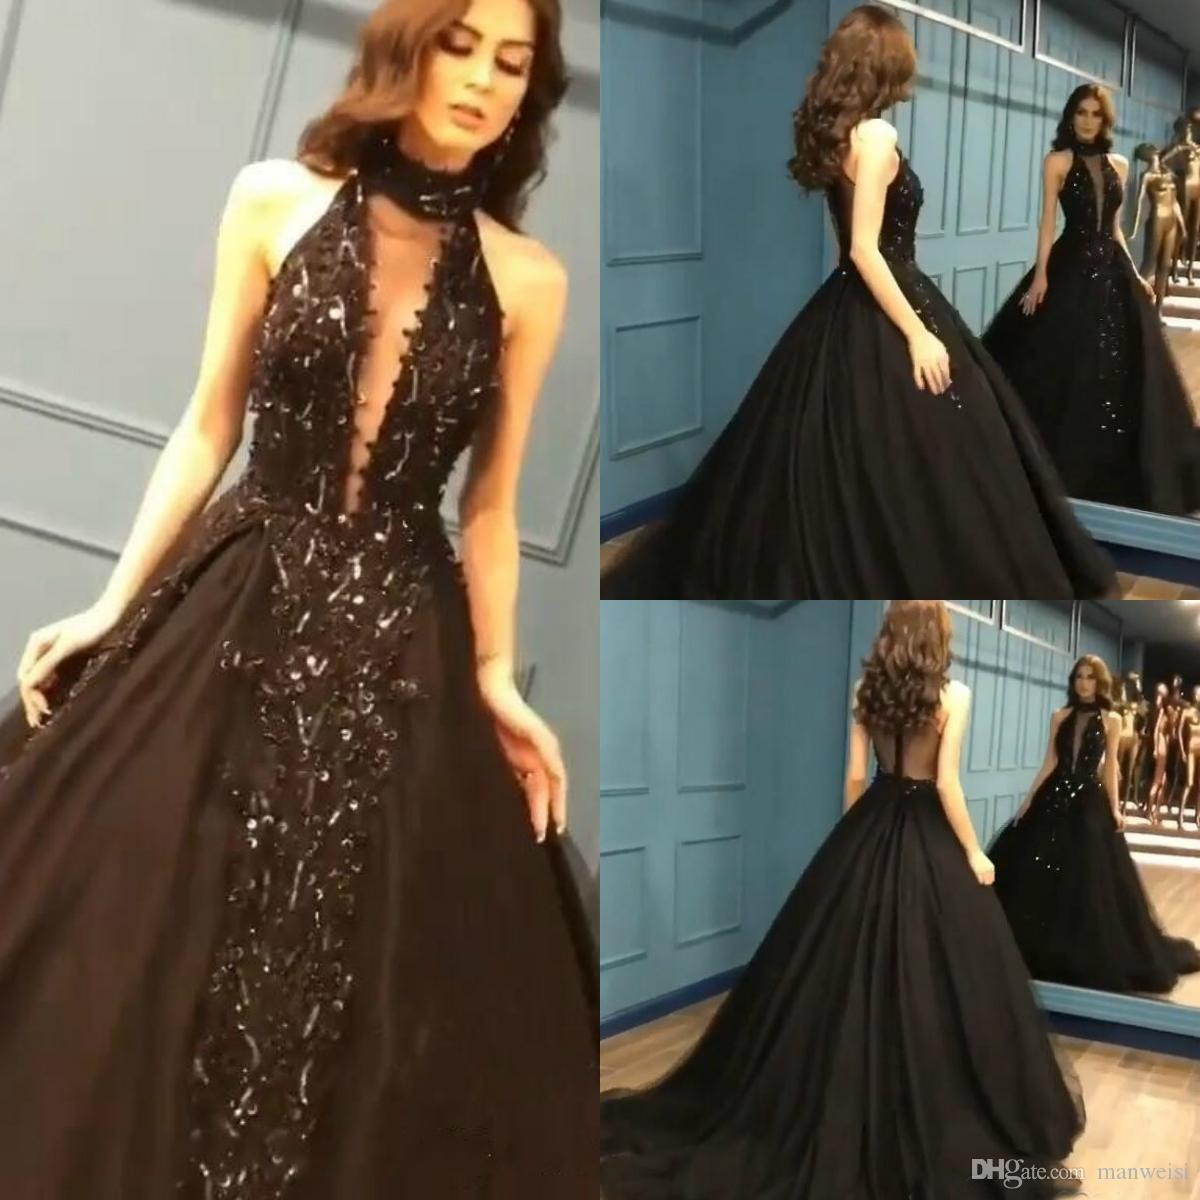 2760e1c242 Modest Sleeveless High Neck Black Prom Dresses 2019 Ball Gown Beading  Sequins Evening Dress Backless Red Carpet Party Gowns Prom Dress Ideas Prom  Dress ...